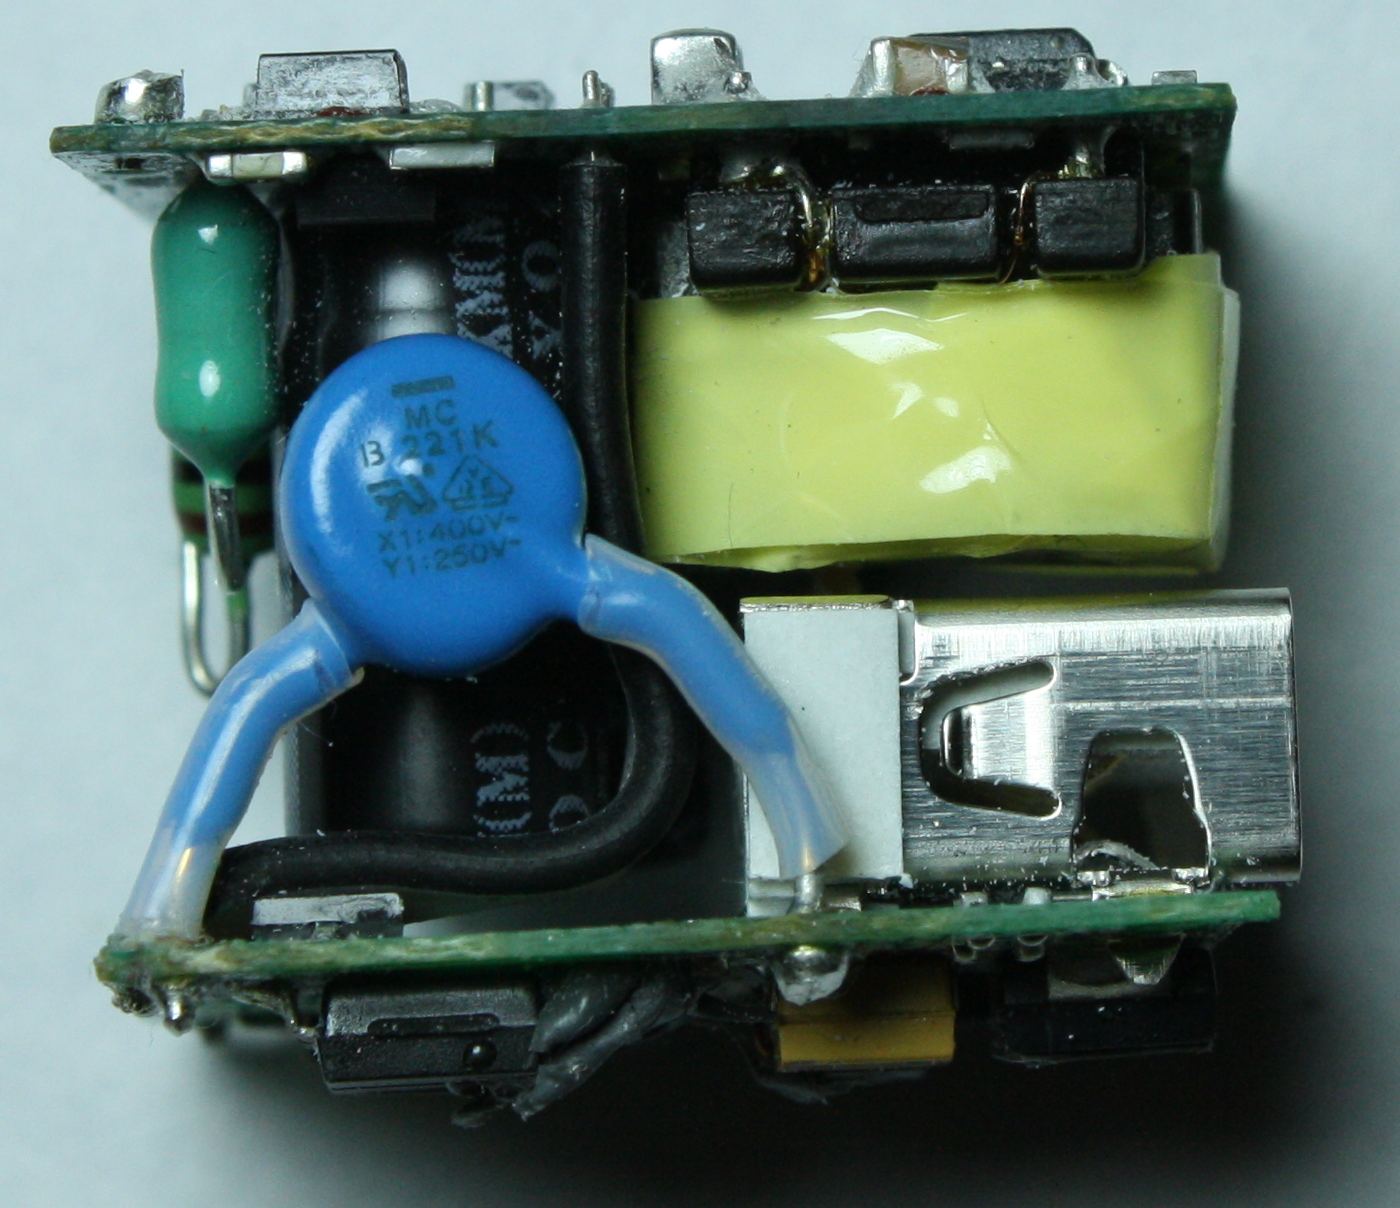 Apple Iphone Charger Teardown Quality In A Tiny Expensive Package Usb Powered Battery Circuit Inside The Input Inductor Green Y Capacitor Blue